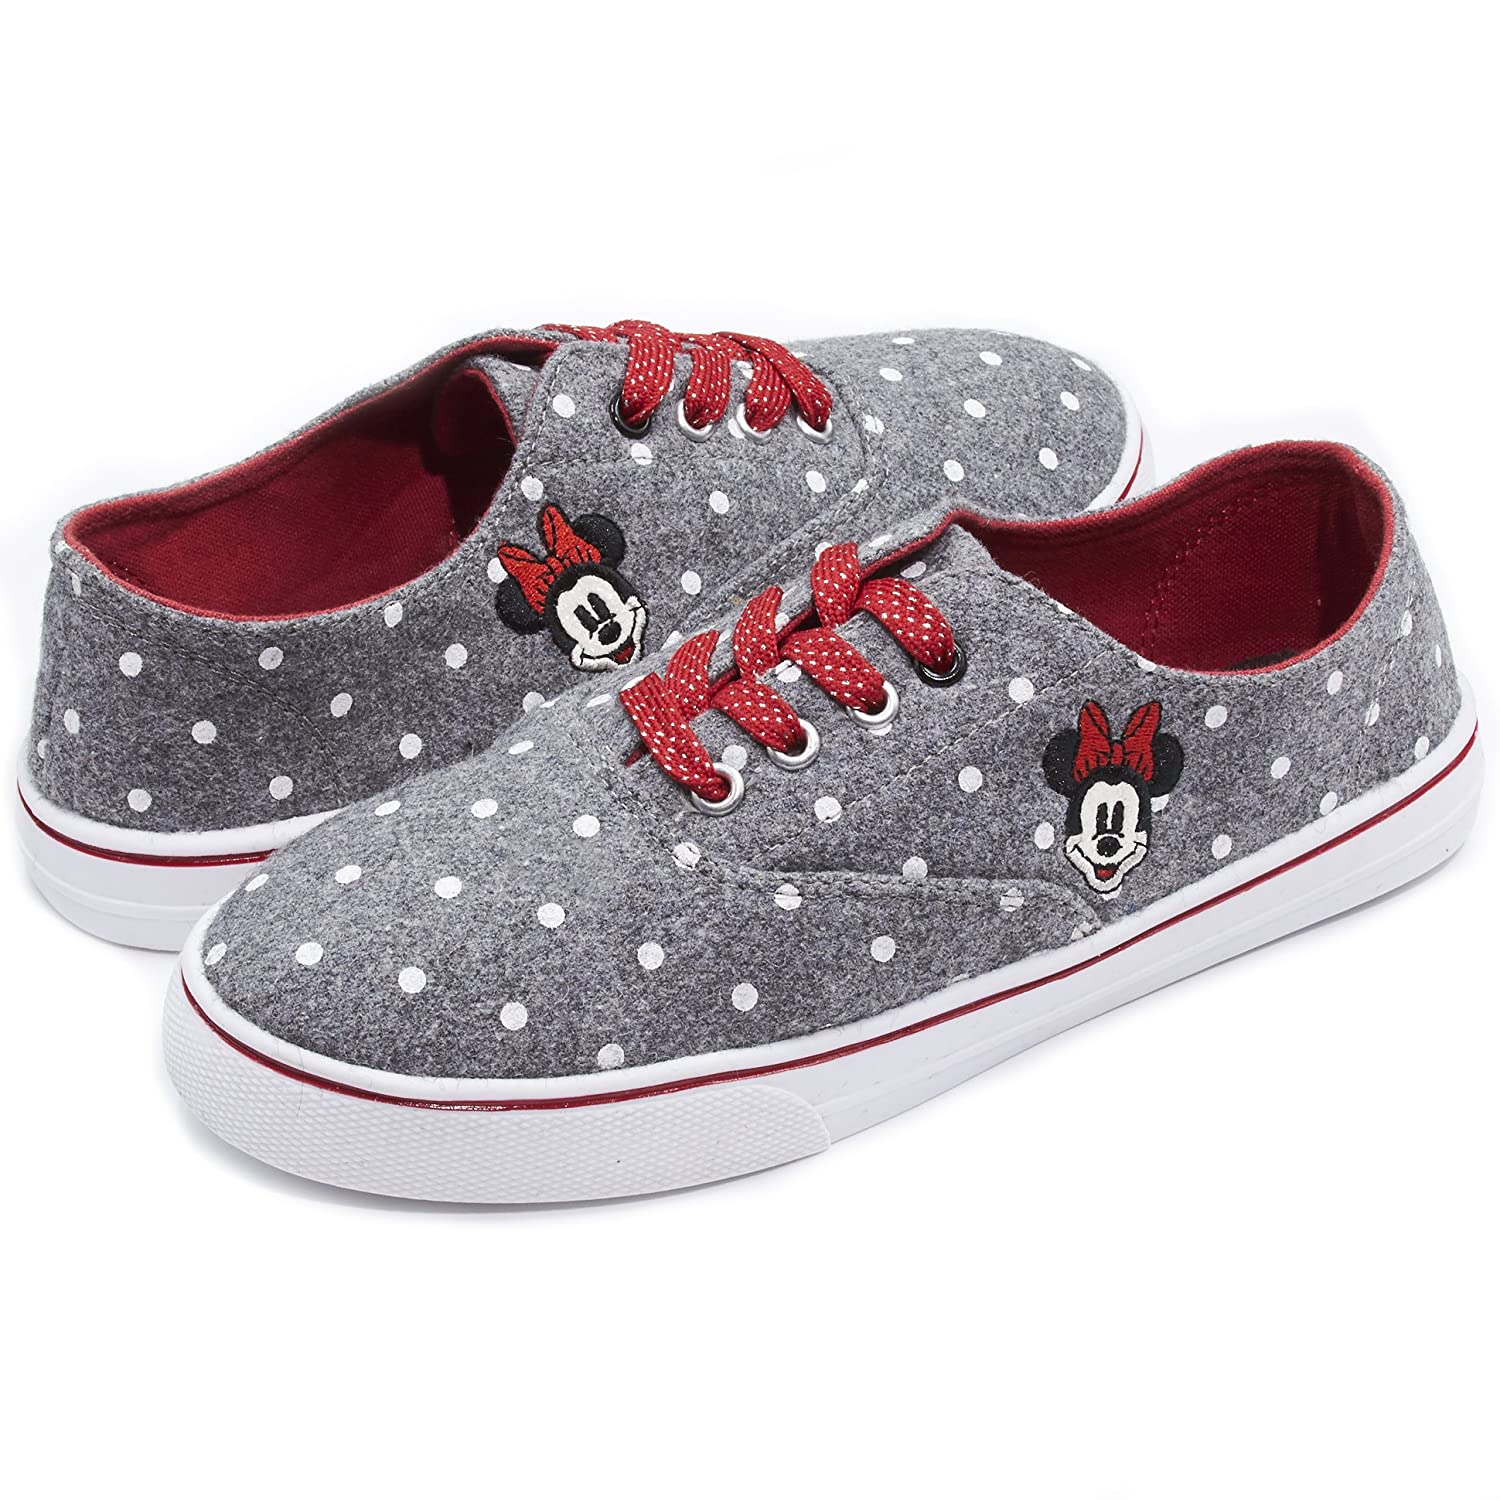 Disney Junior Teen Girls Low Top Mickey and Minnie Fashion Sneakers (See More Designs and Sizes) B074CF8N15 11 B(M) US|Grey